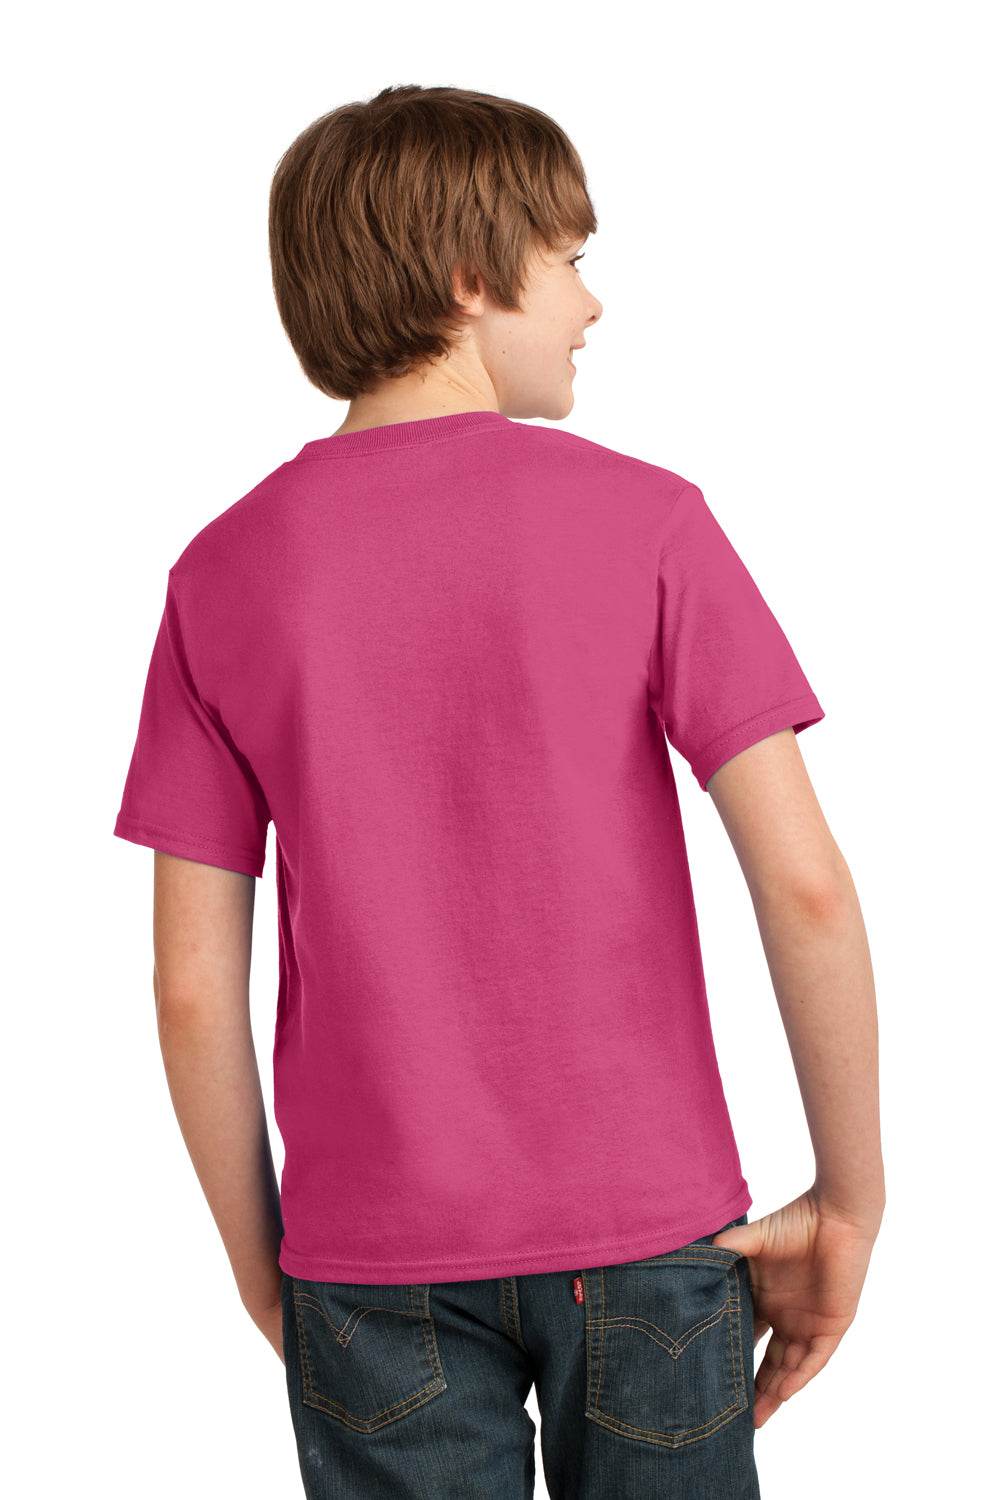 Port & Company PC61Y Youth Essential Short Sleeve Crewneck T-Shirt Sangria Pink Back